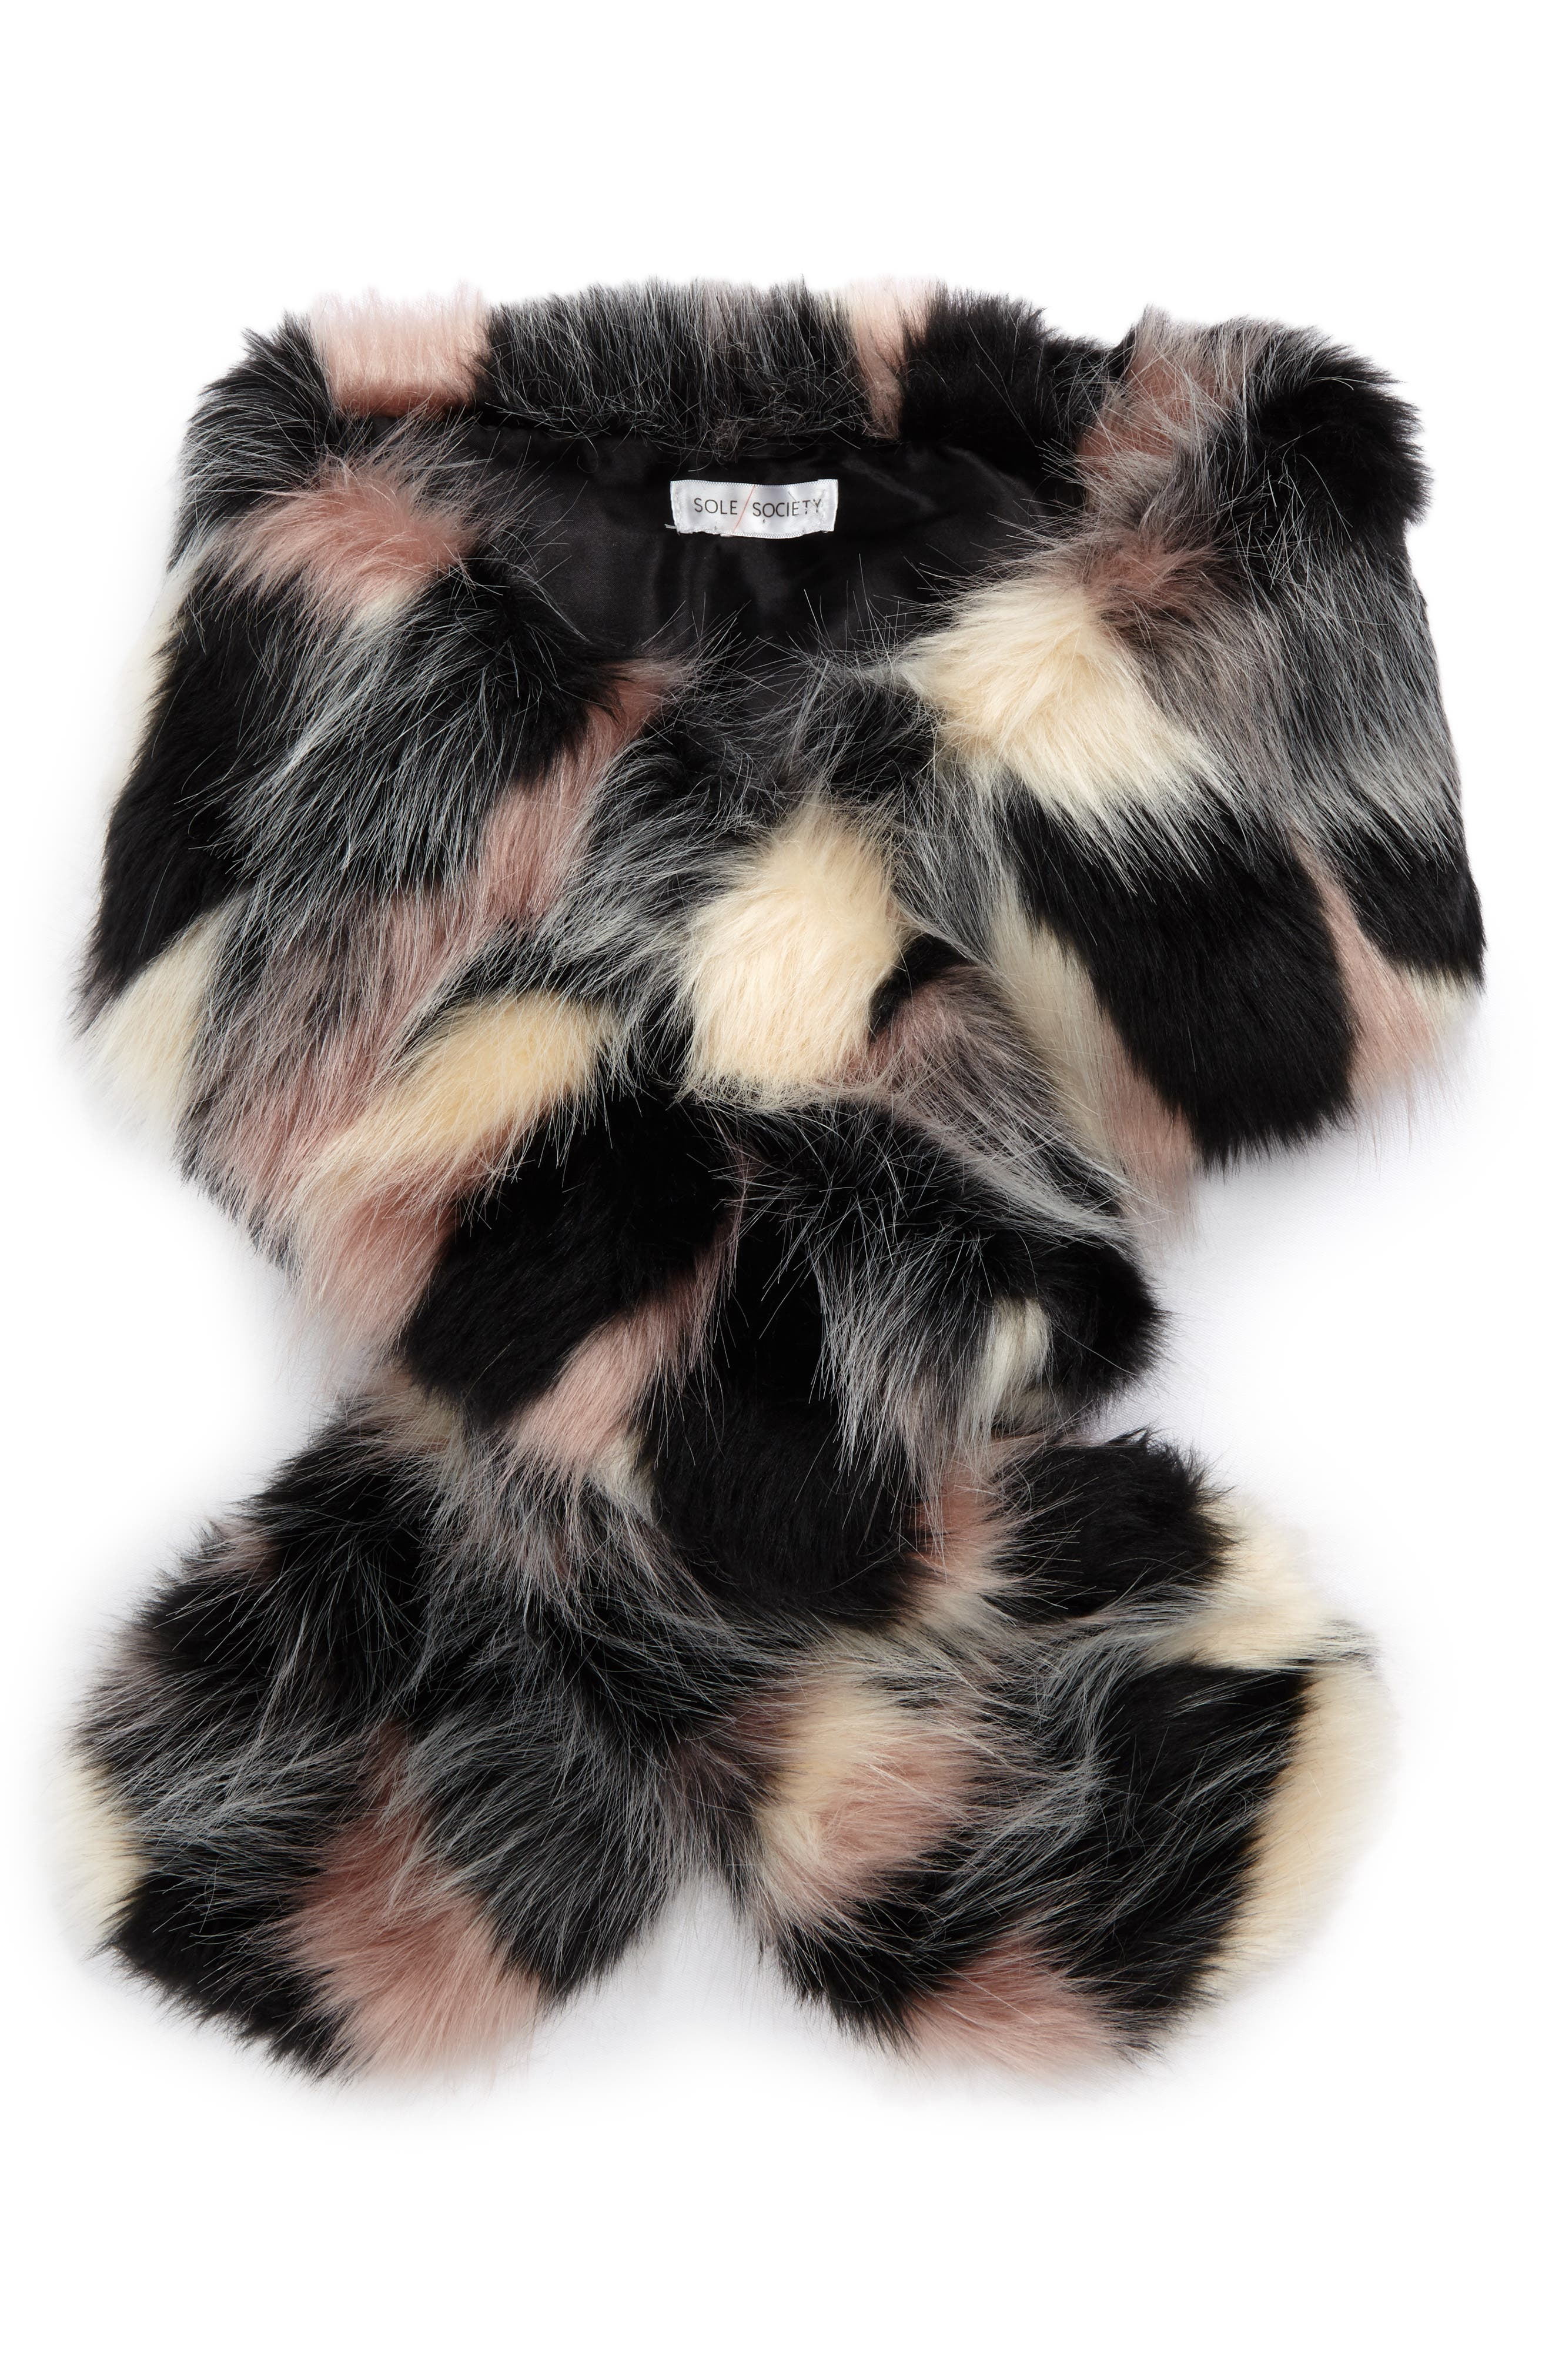 Alternate Image 1 Selected - Sole Society Oversized Faux Fur Wrap